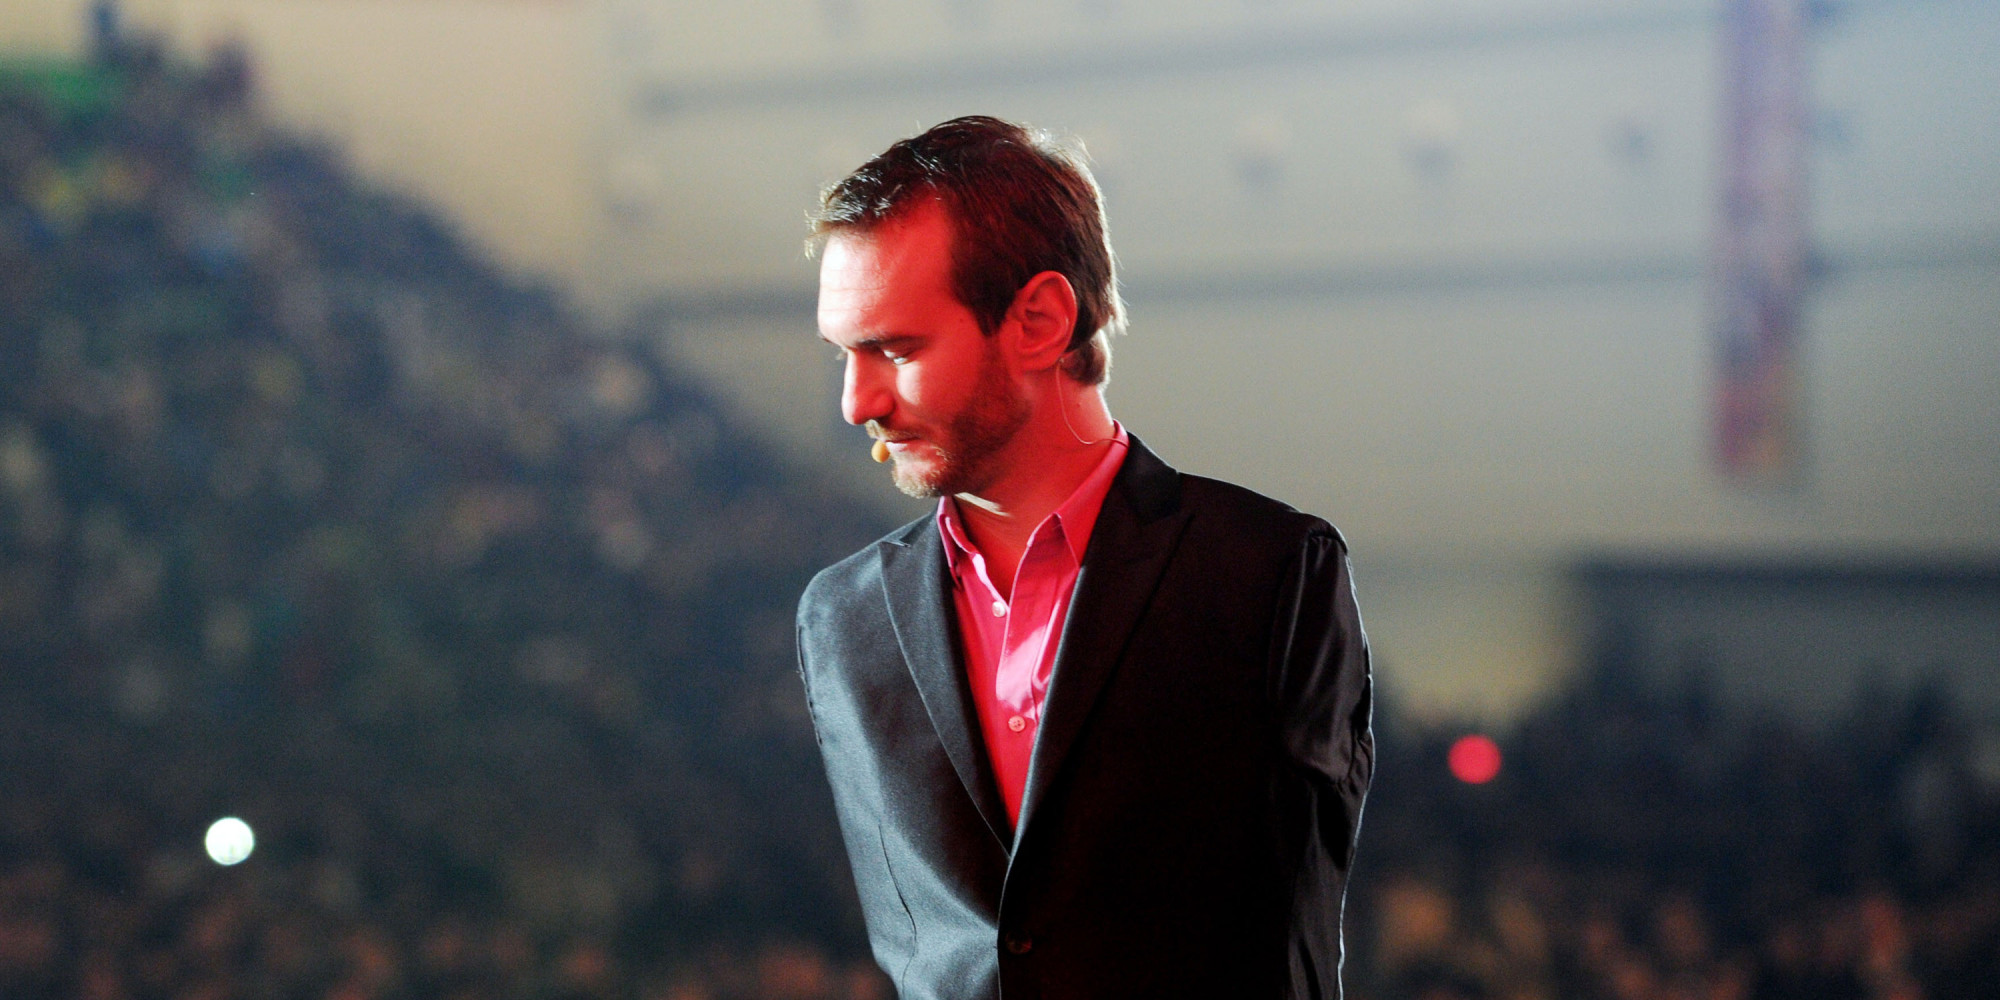 Httpwww Overlordsofchaos Comhtmlorigin Of The Word Jew Html: Christian Nick Vujicic Offers Powerful Testimony On